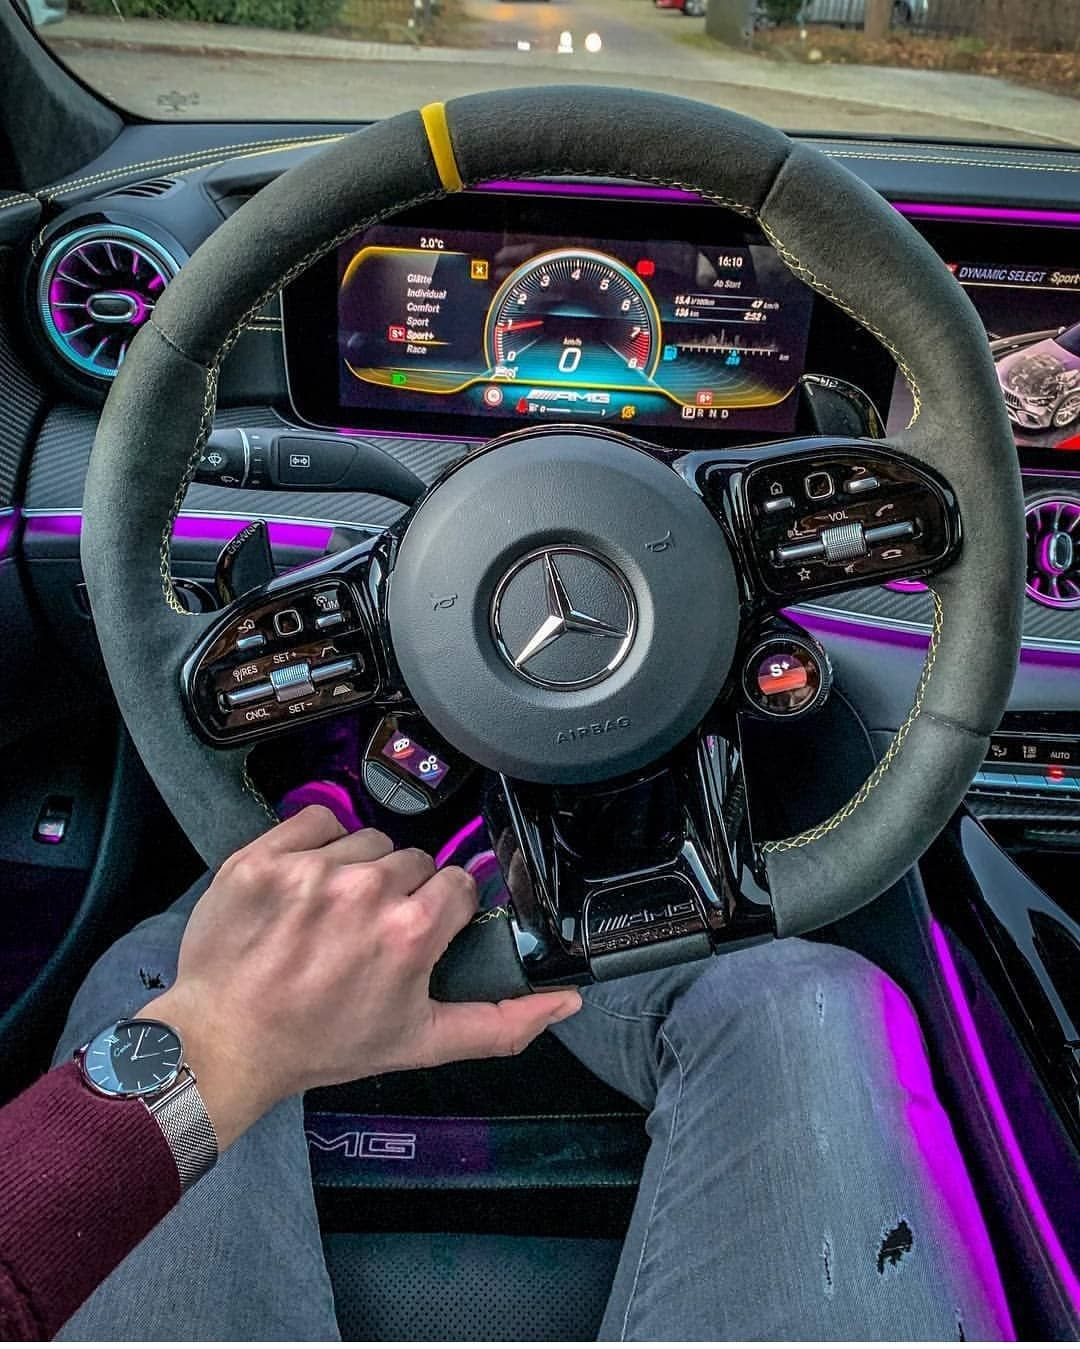 Amg S63 4matic S65 Mansory Brabus C63 E63 Amggt Gle63s